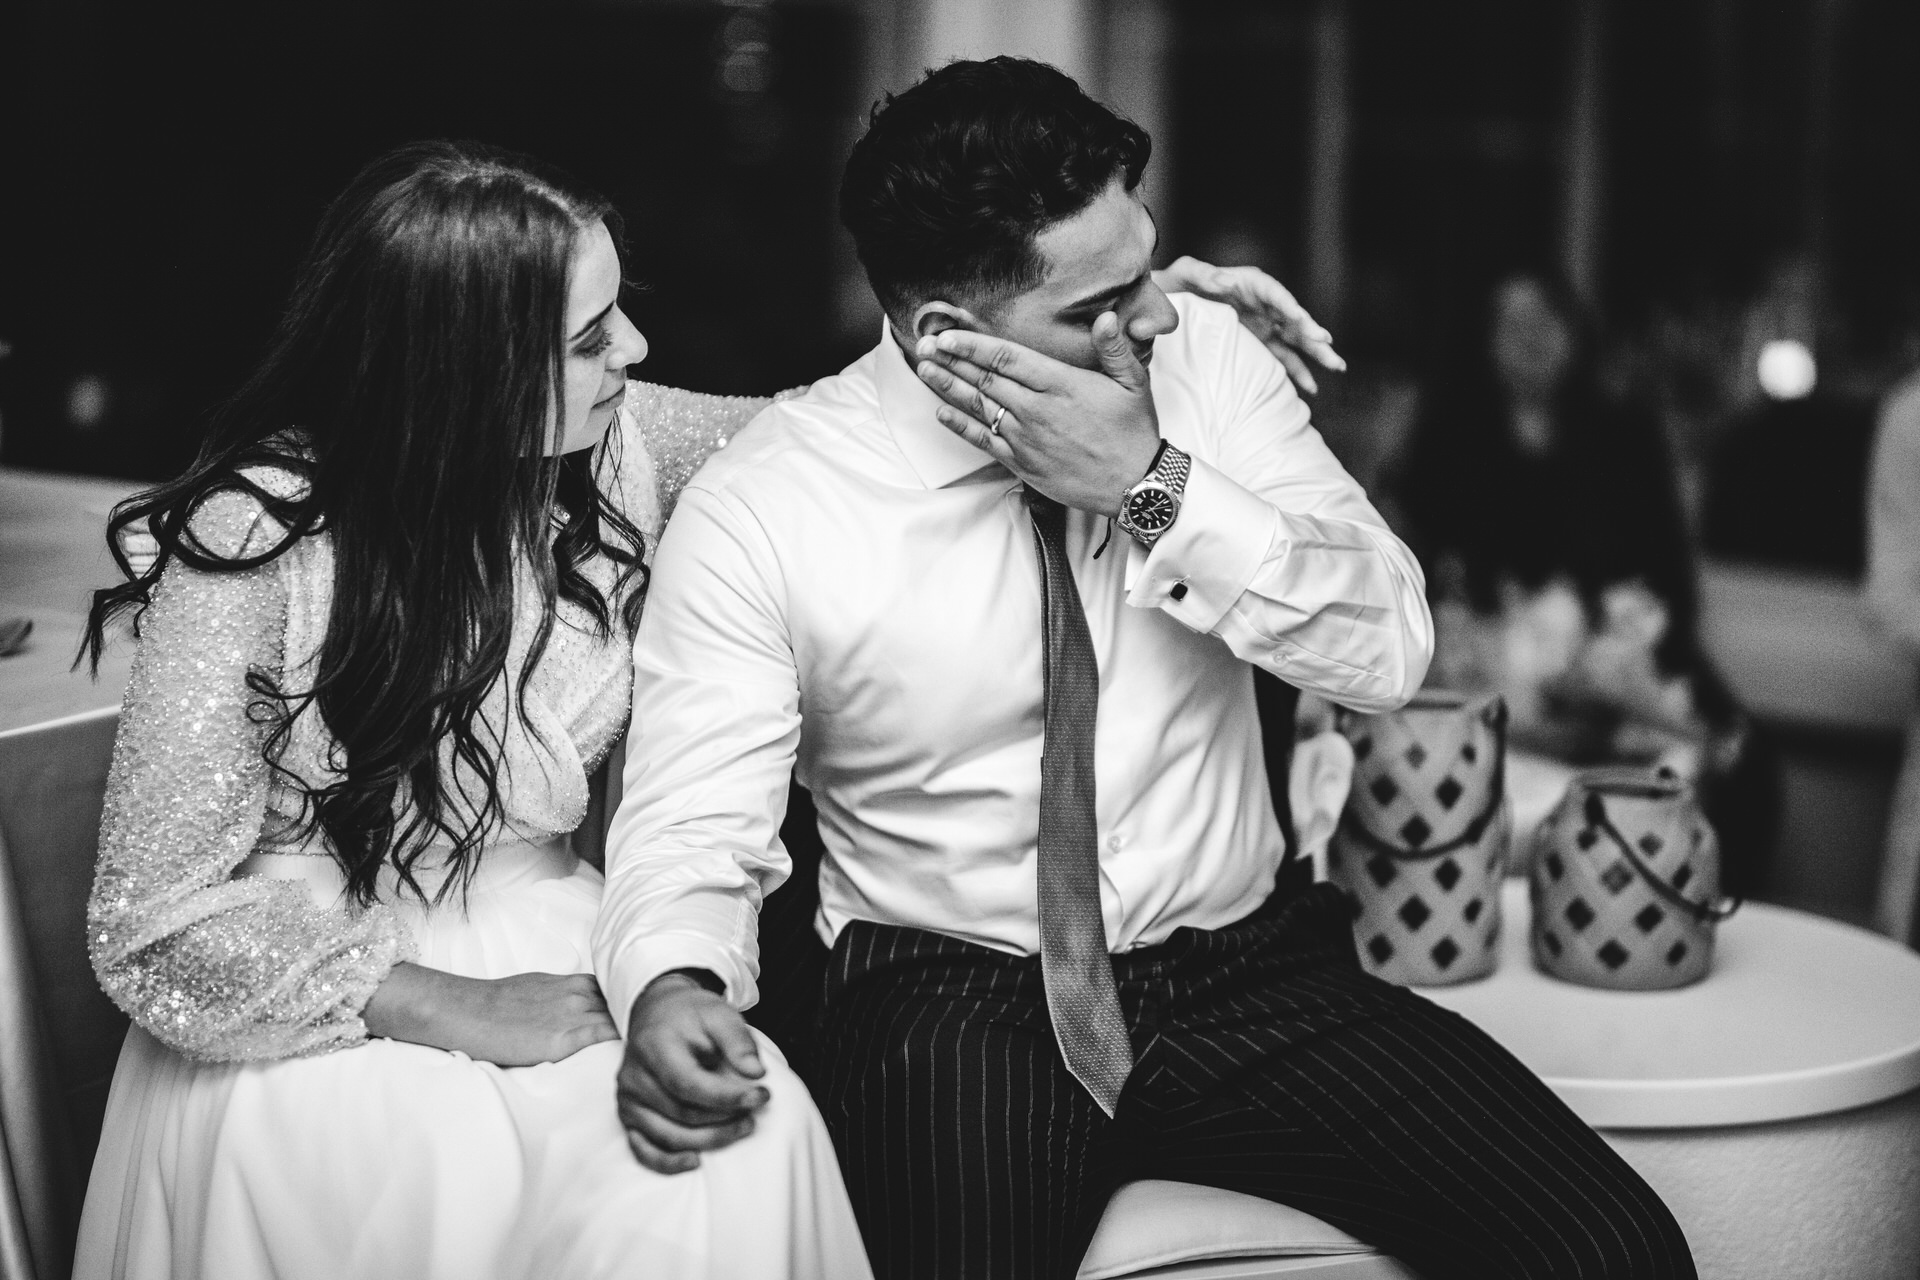 Zürich Elopement Venue Image | The bride and groom sit next to each other during the reception party